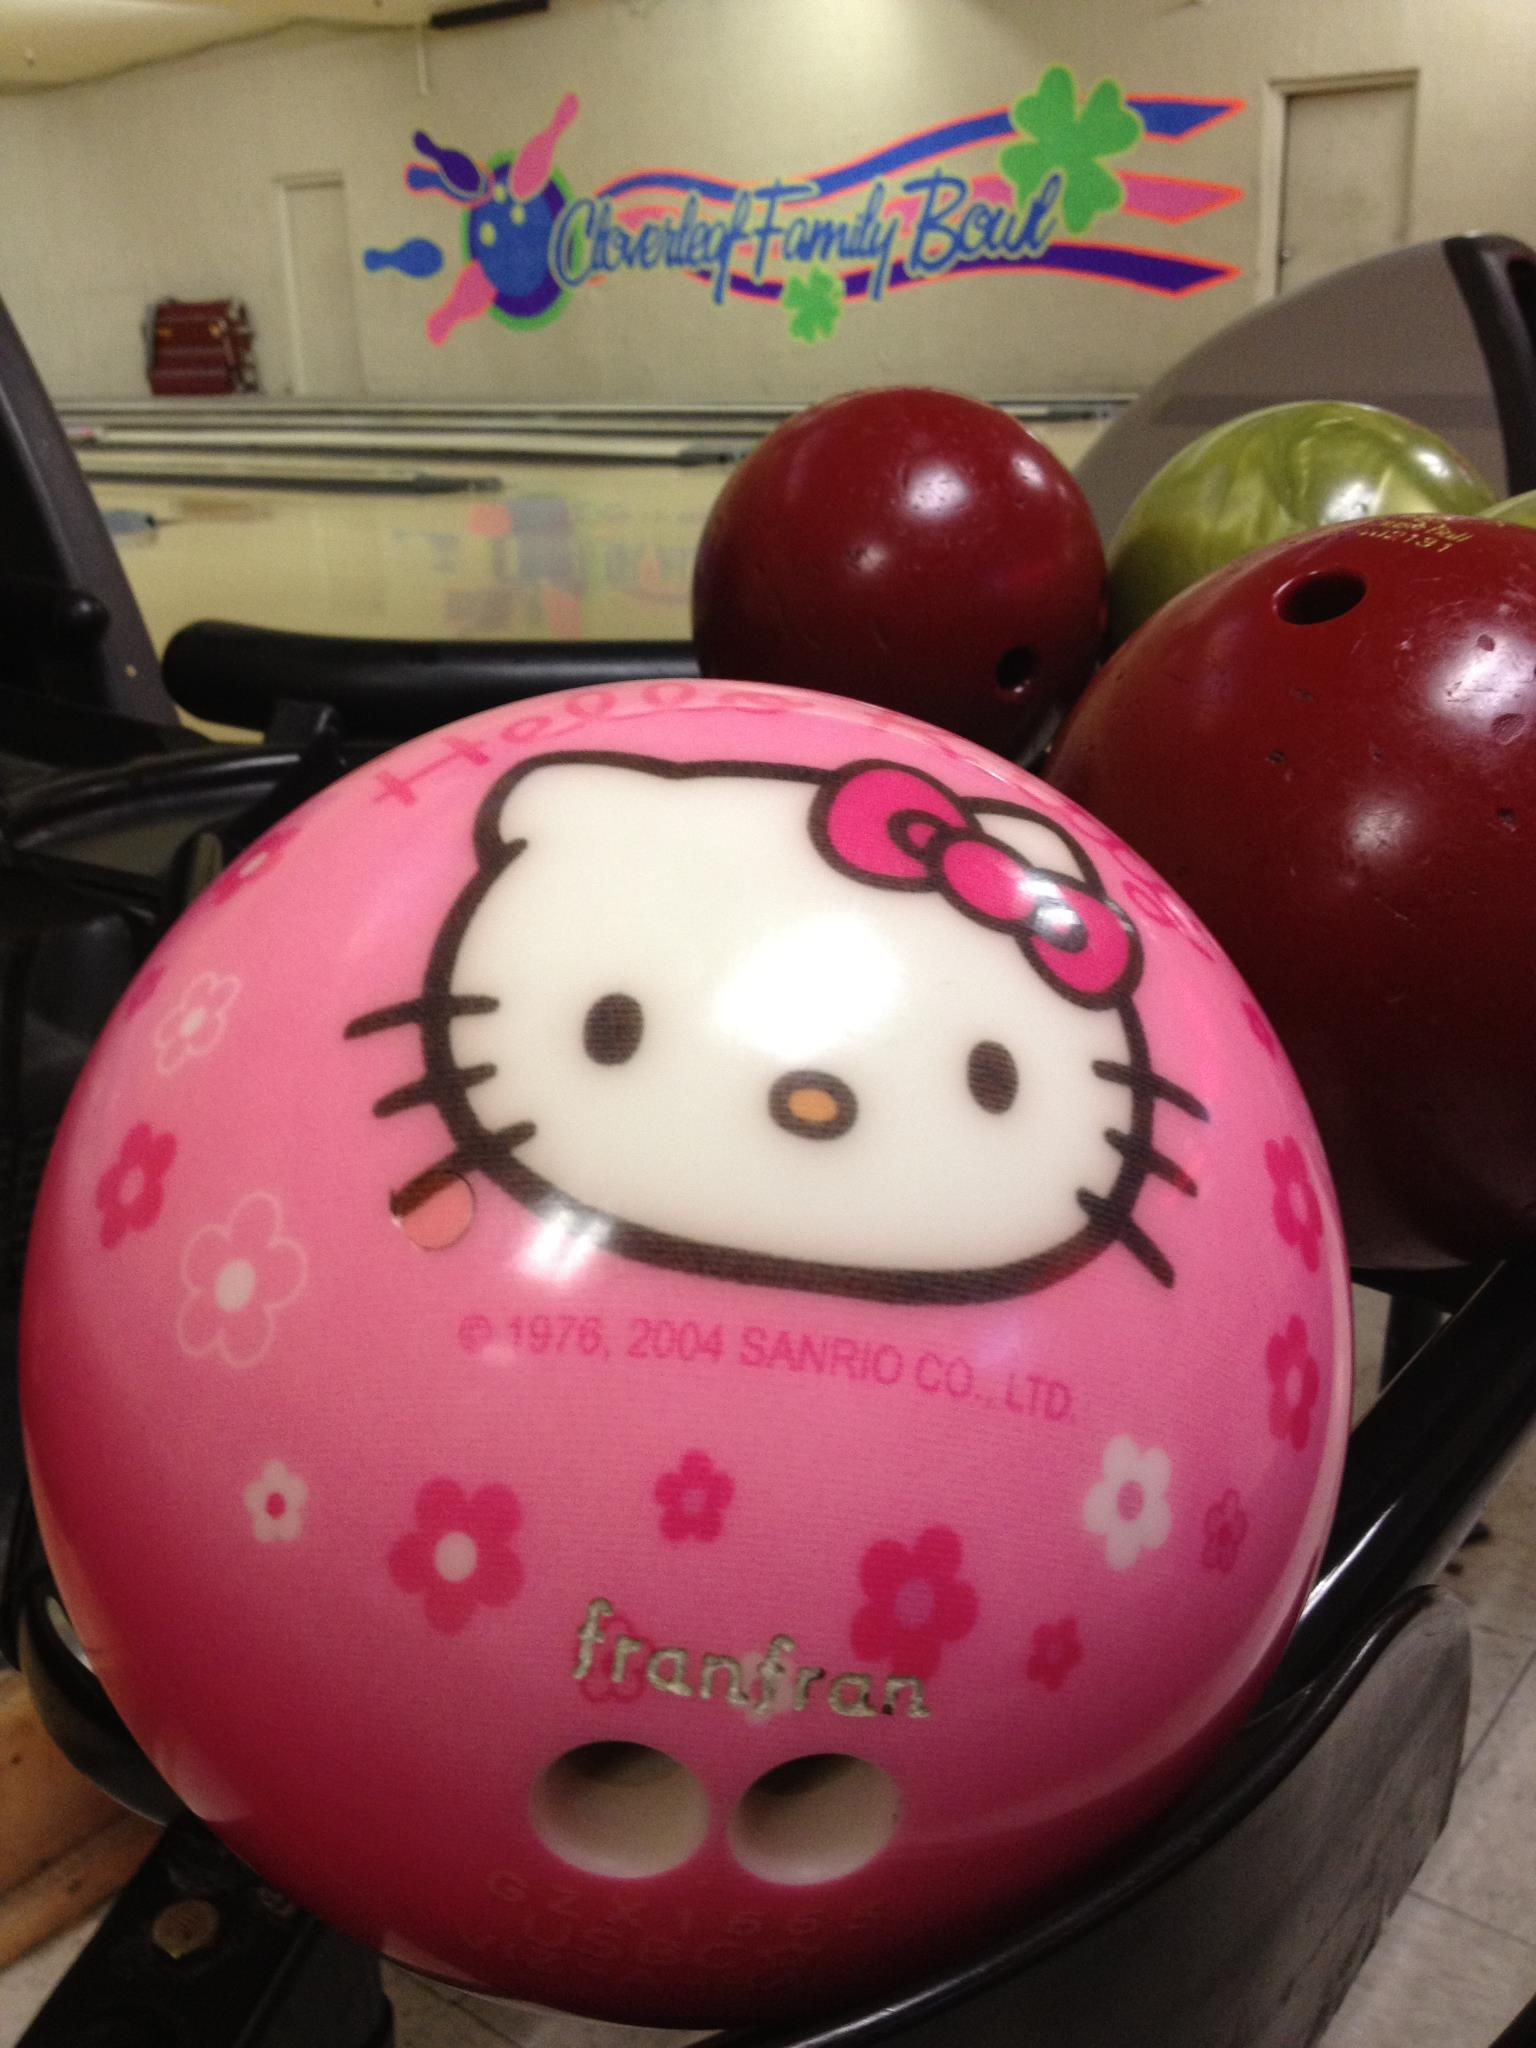 171322d10ba9 I m Cheyenne and i m addicted to Hello Kitty! Anyone Else   ! ! !.............♥ Repin ♥